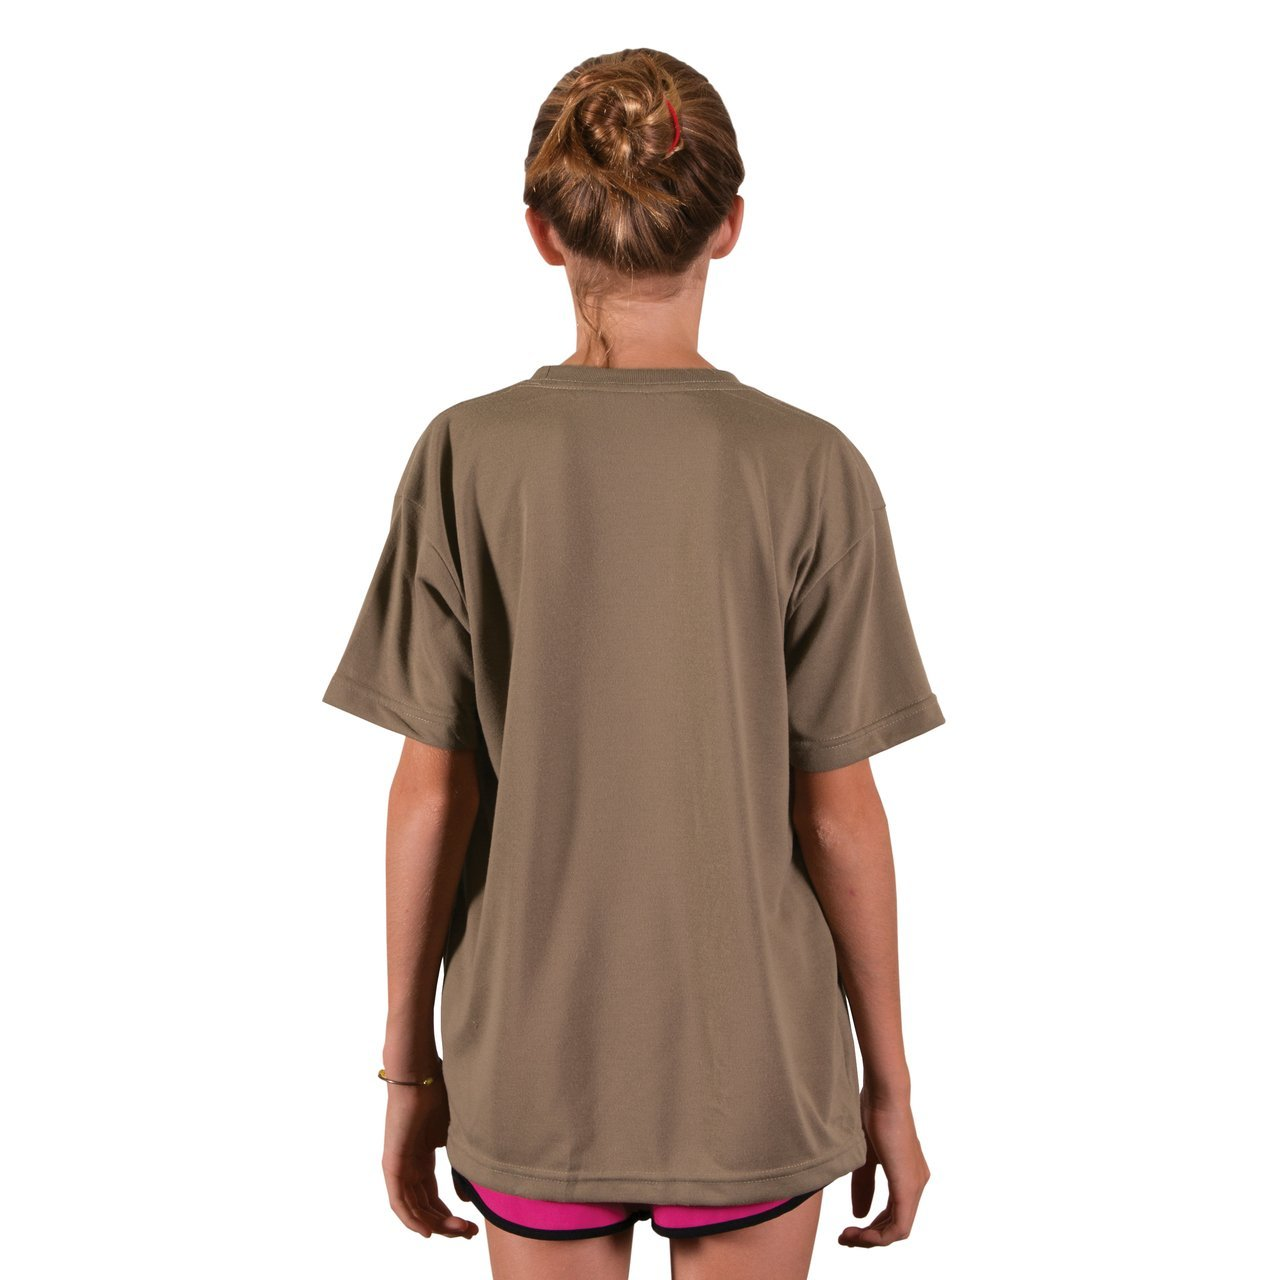 A3SJBBEA Youth Basic Performance T-Shirt - Earth